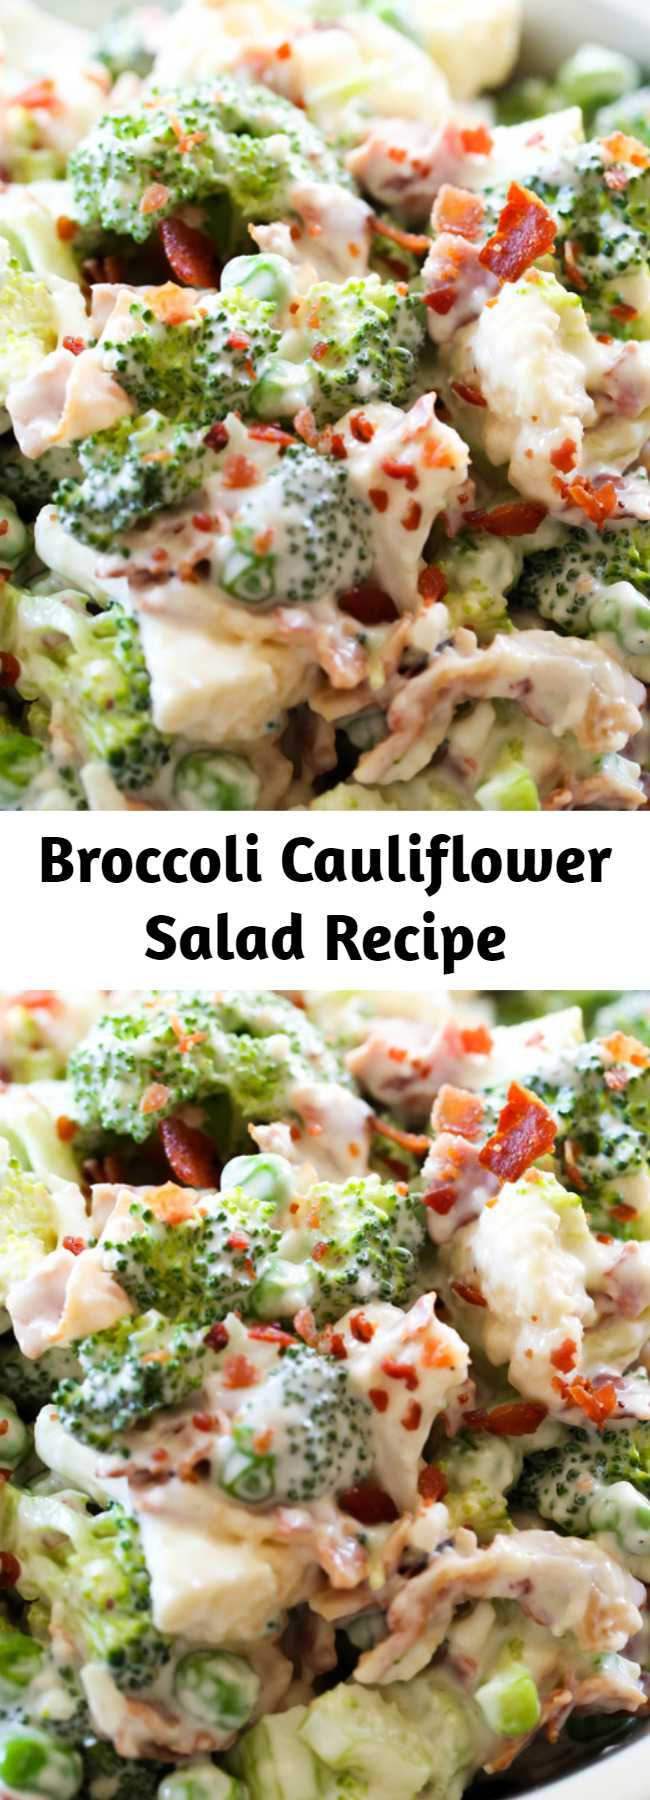 Broccoli Cauliflower Salad Recipe - This salad is AMAZING! The creamy dressing is beyond delicious and go perfectly with the crisp broccoli and cauliflower! This is one recipe you are going to want to try out!